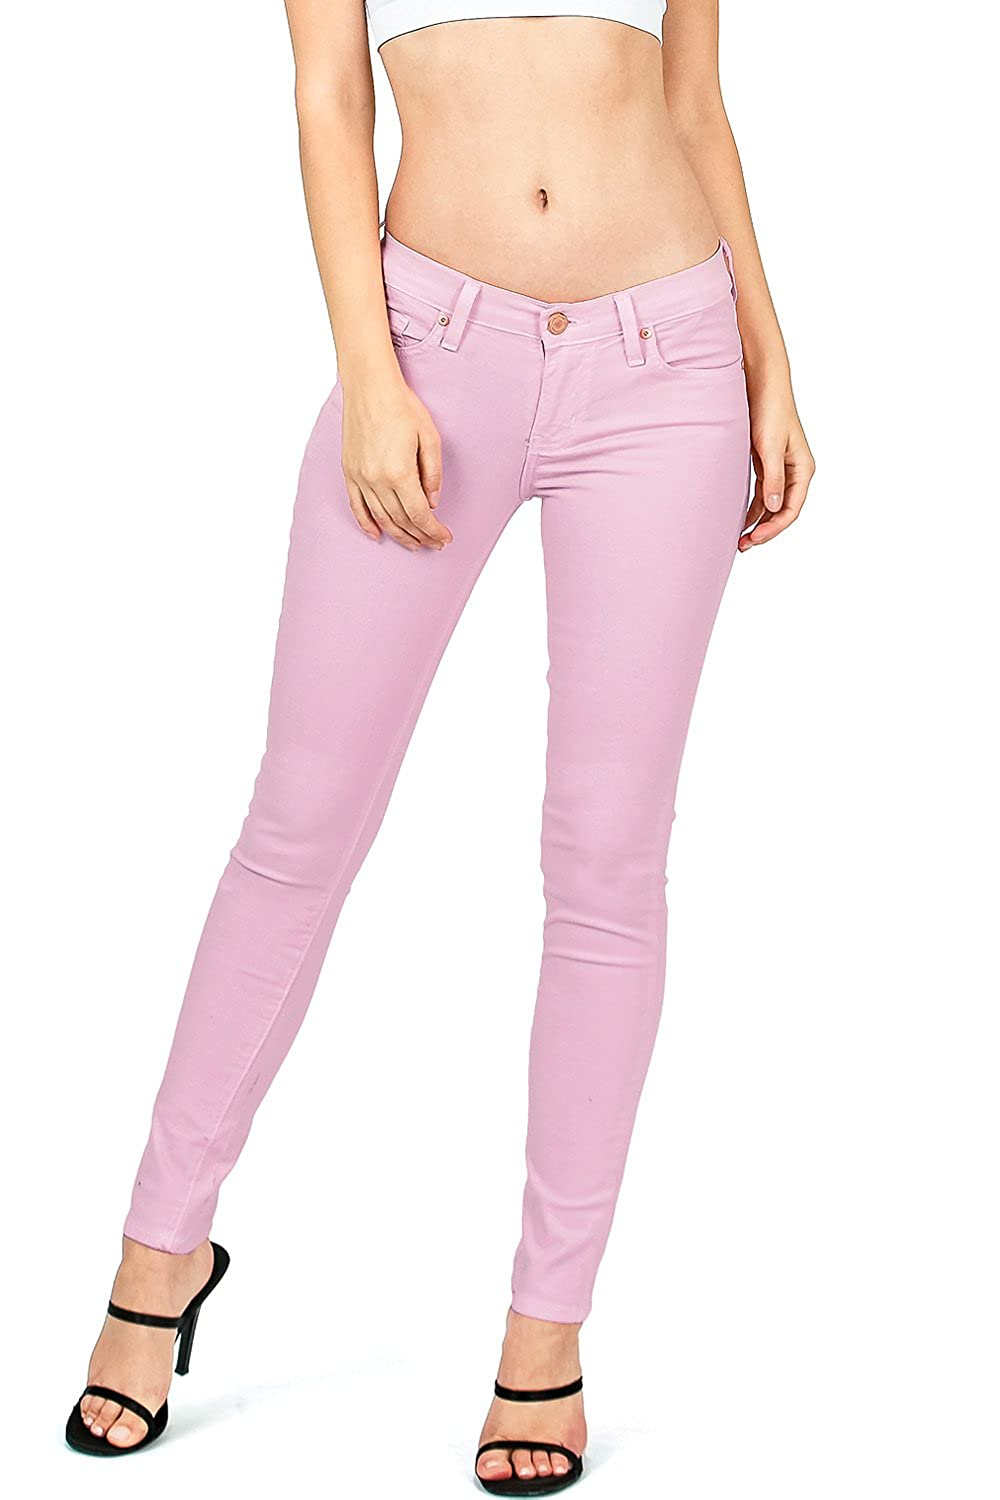 Lavander Angry Rabbit by Pink Ice Women's Juniors Mid Waist Skinny colord Jeans